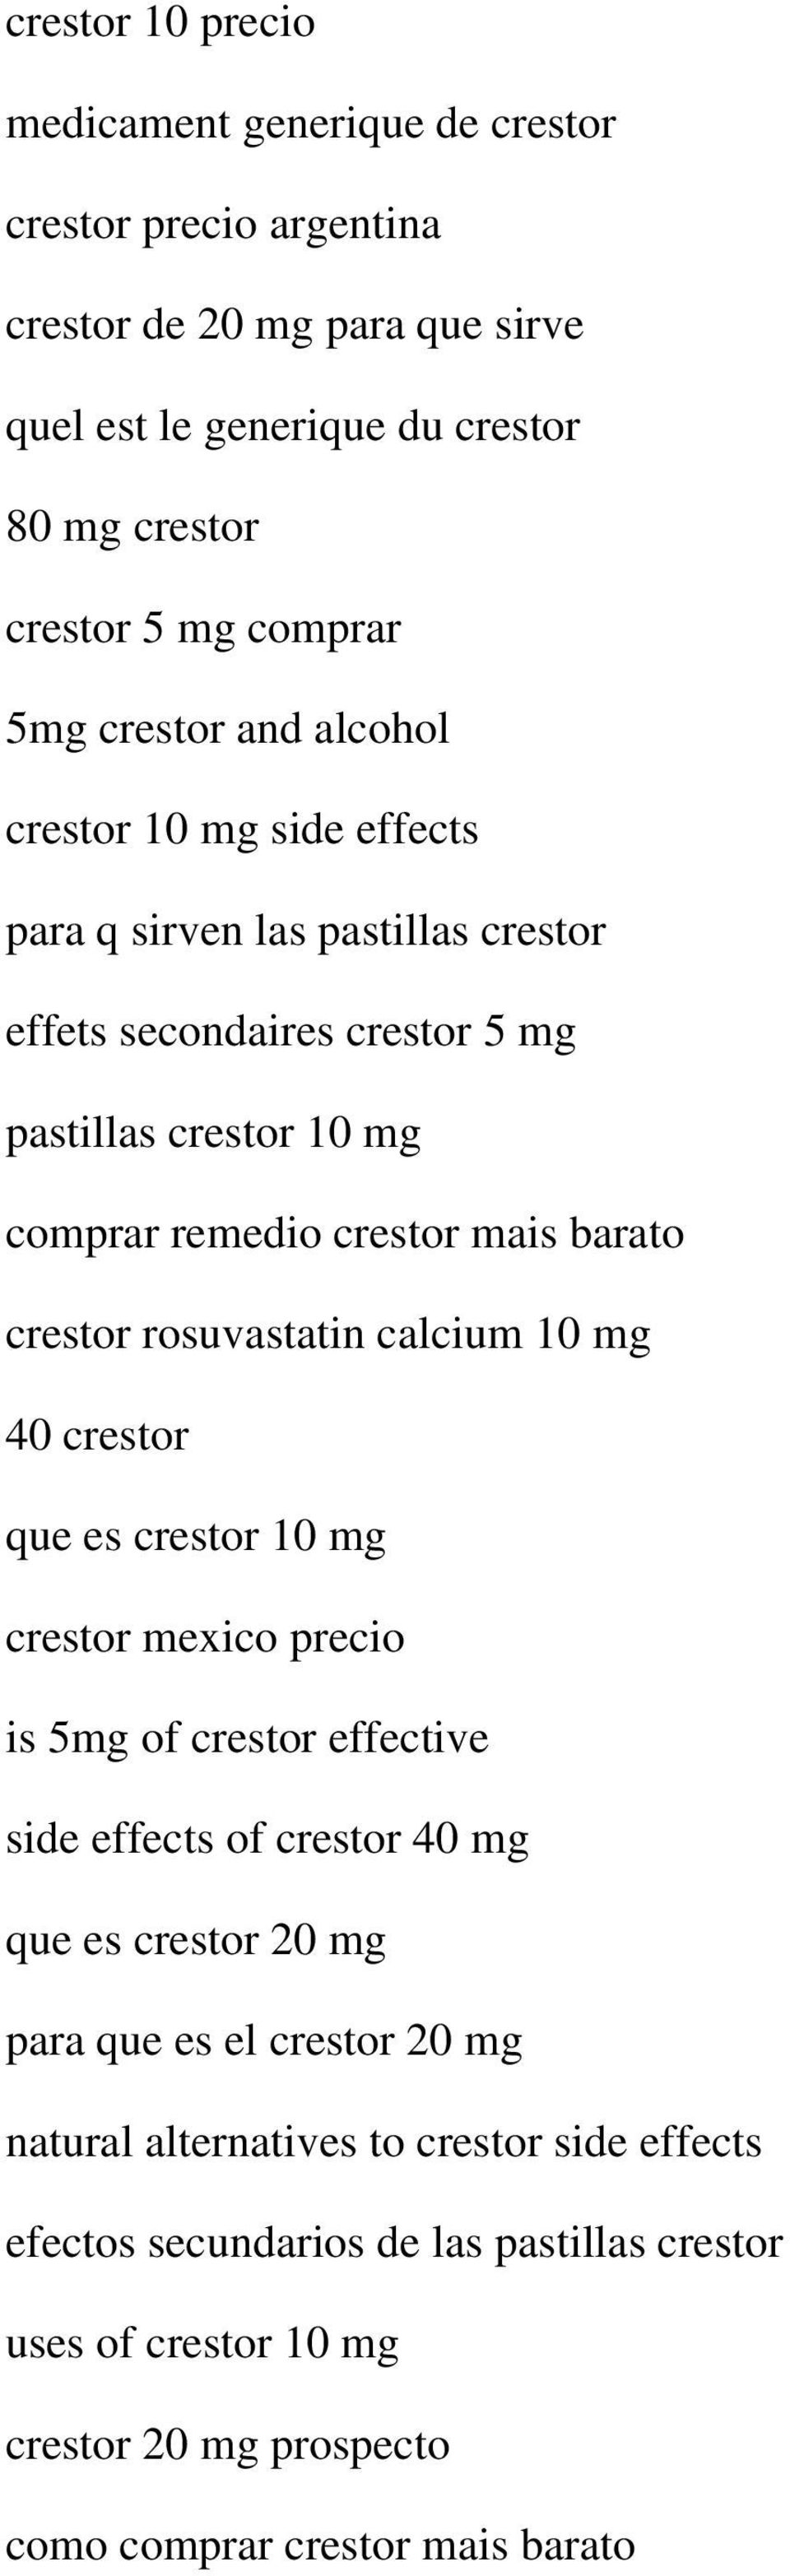 crestor rosuvastatin calcium 10 mg 40 crestor que es crestor 10 mg crestor mexico precio is 5mg of crestor effective side effects of crestor 40 mg que es crestor 20 mg para que es